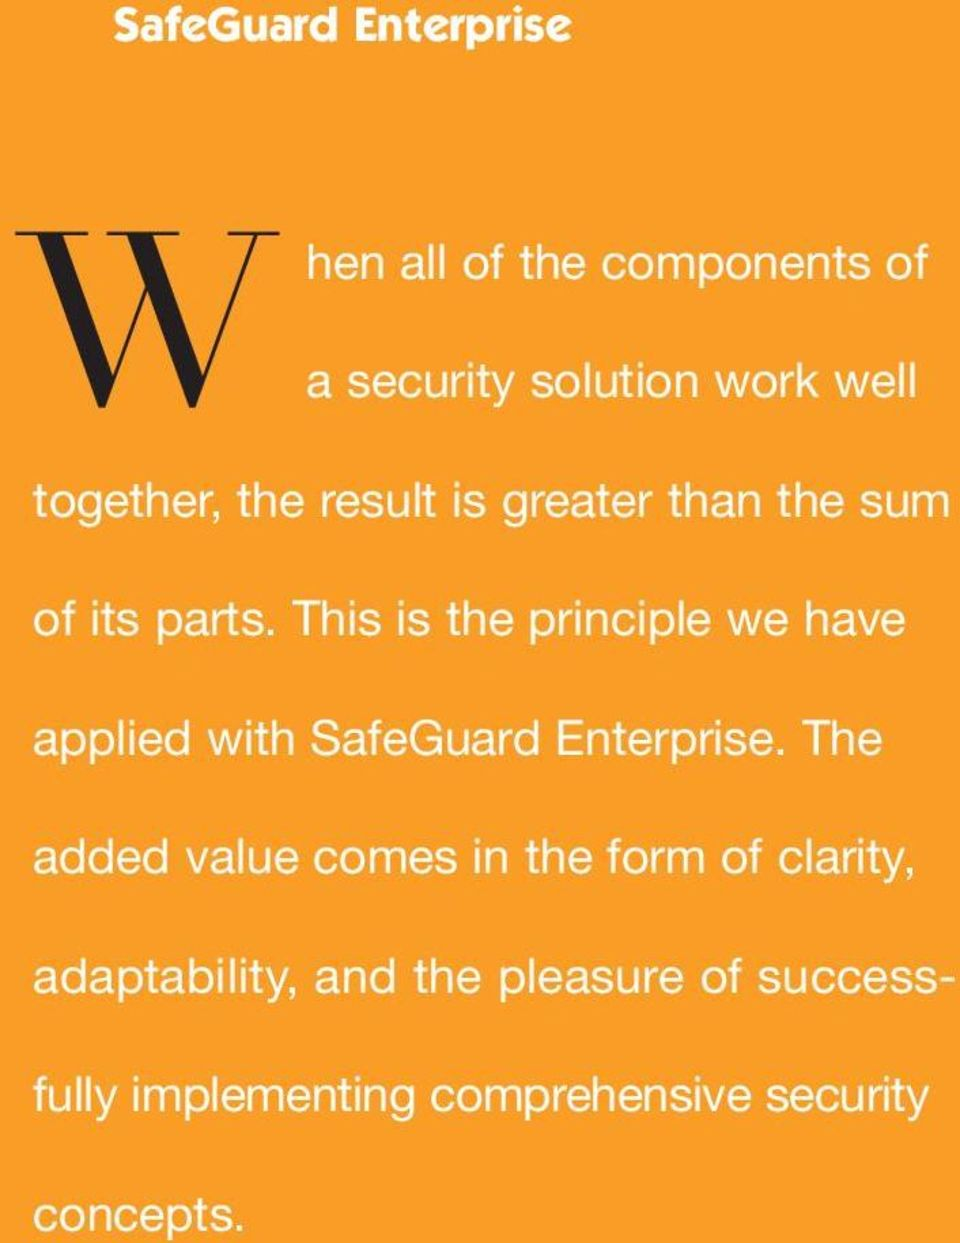 This is the principle we have applied with SafeGuard Enterprise.